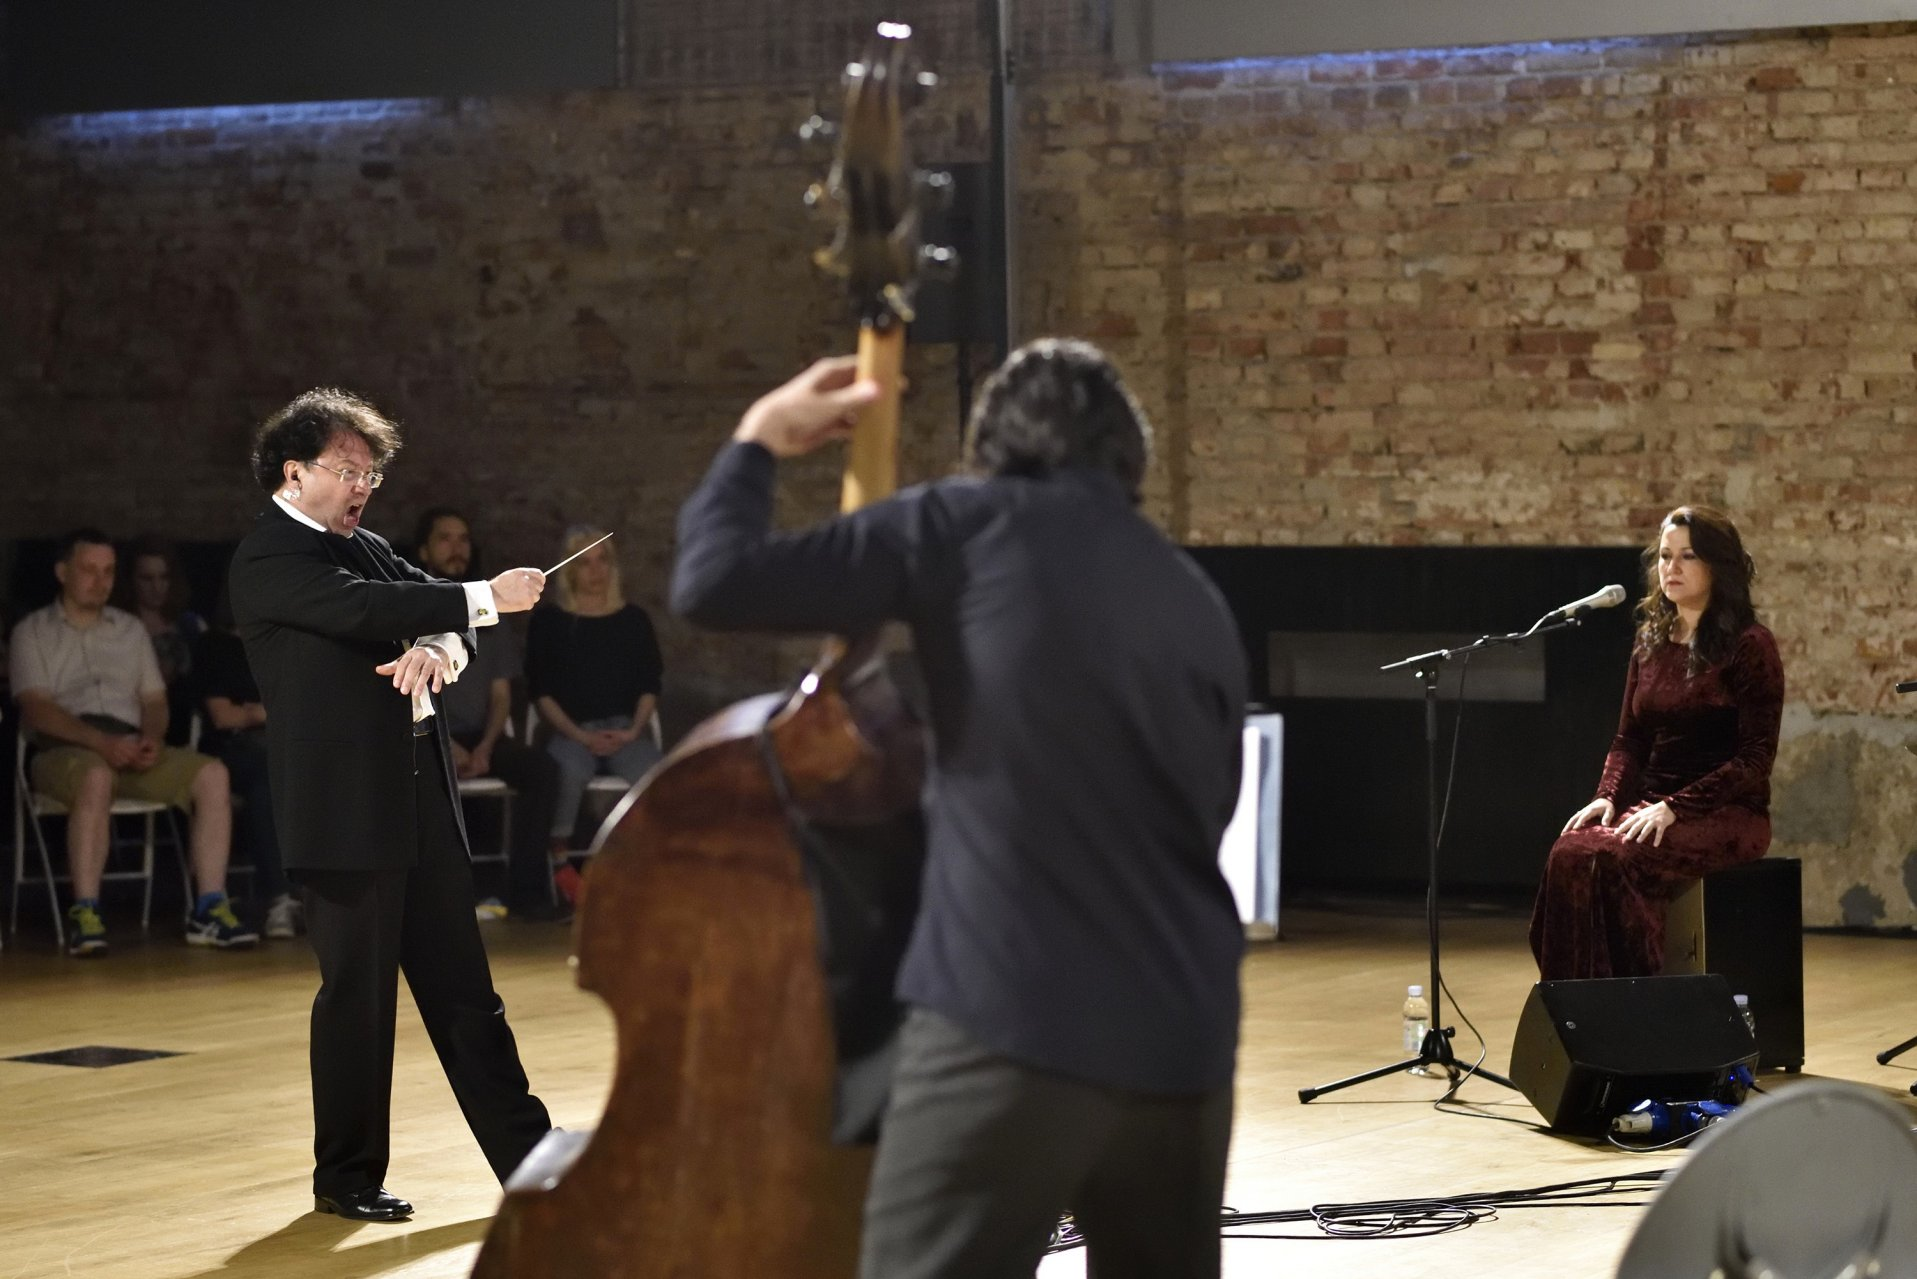 composer and conductor Mauricio Sotelo with the soloists flamenco singer Alba Carmona and double bass player Goran Kostić